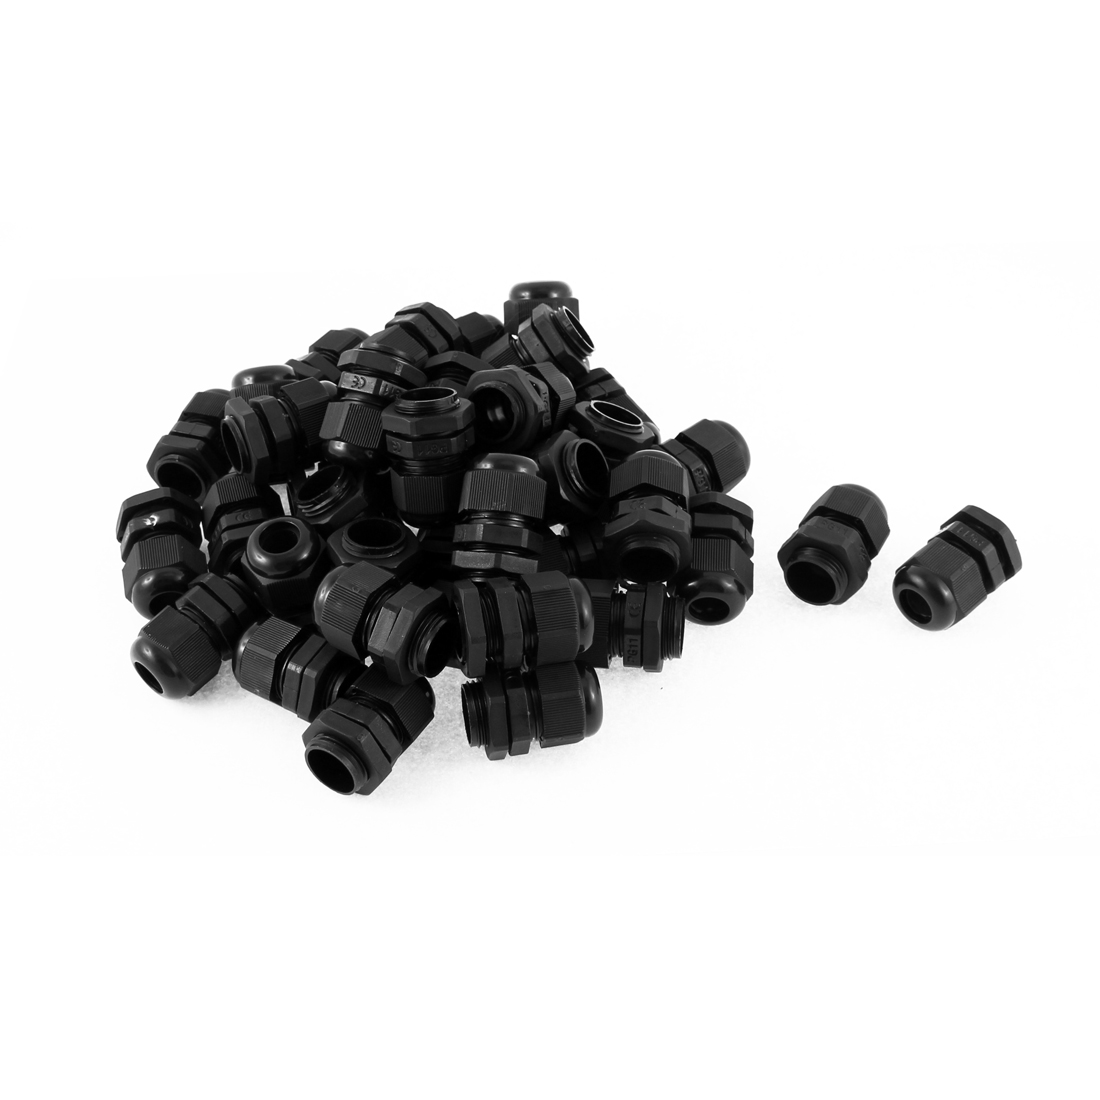 40Pcs PG11 18mm Thread Black Plastic Waterproof Cable Glands Connectors for 5-10mm Dia Wire